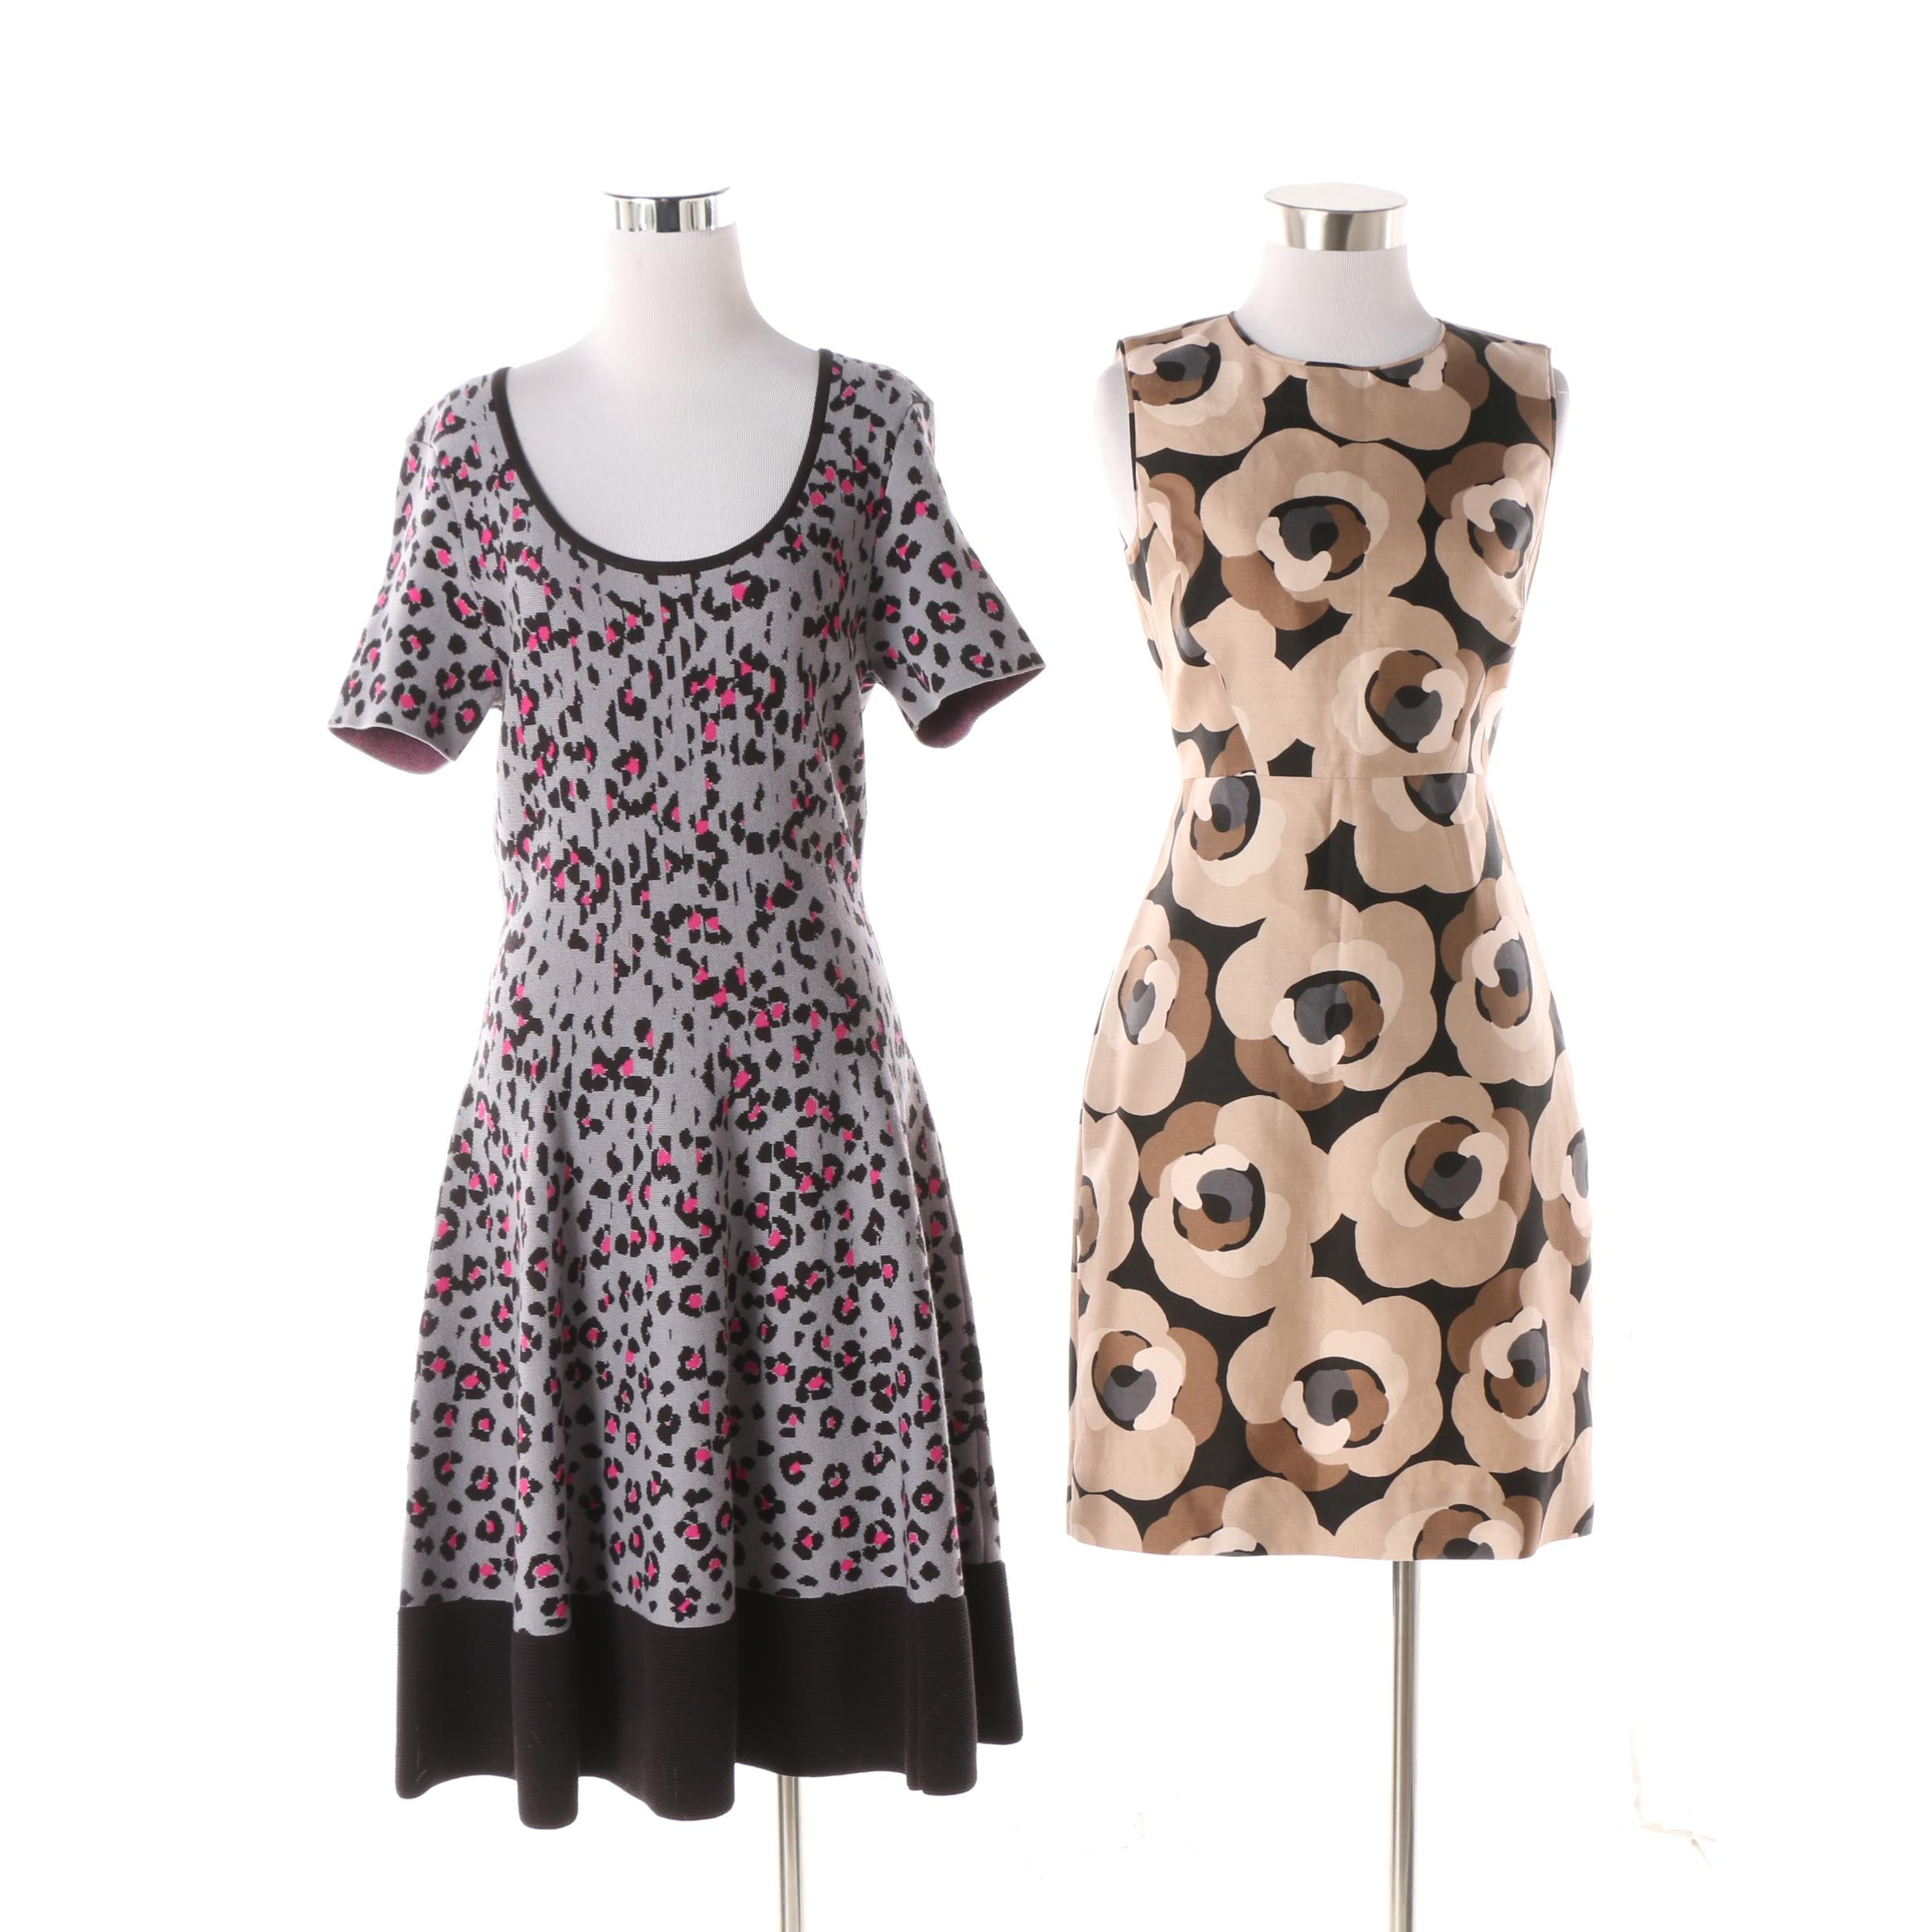 Kate Spade New York Sleeveless Shift Dress and Animal Print Knit Dress